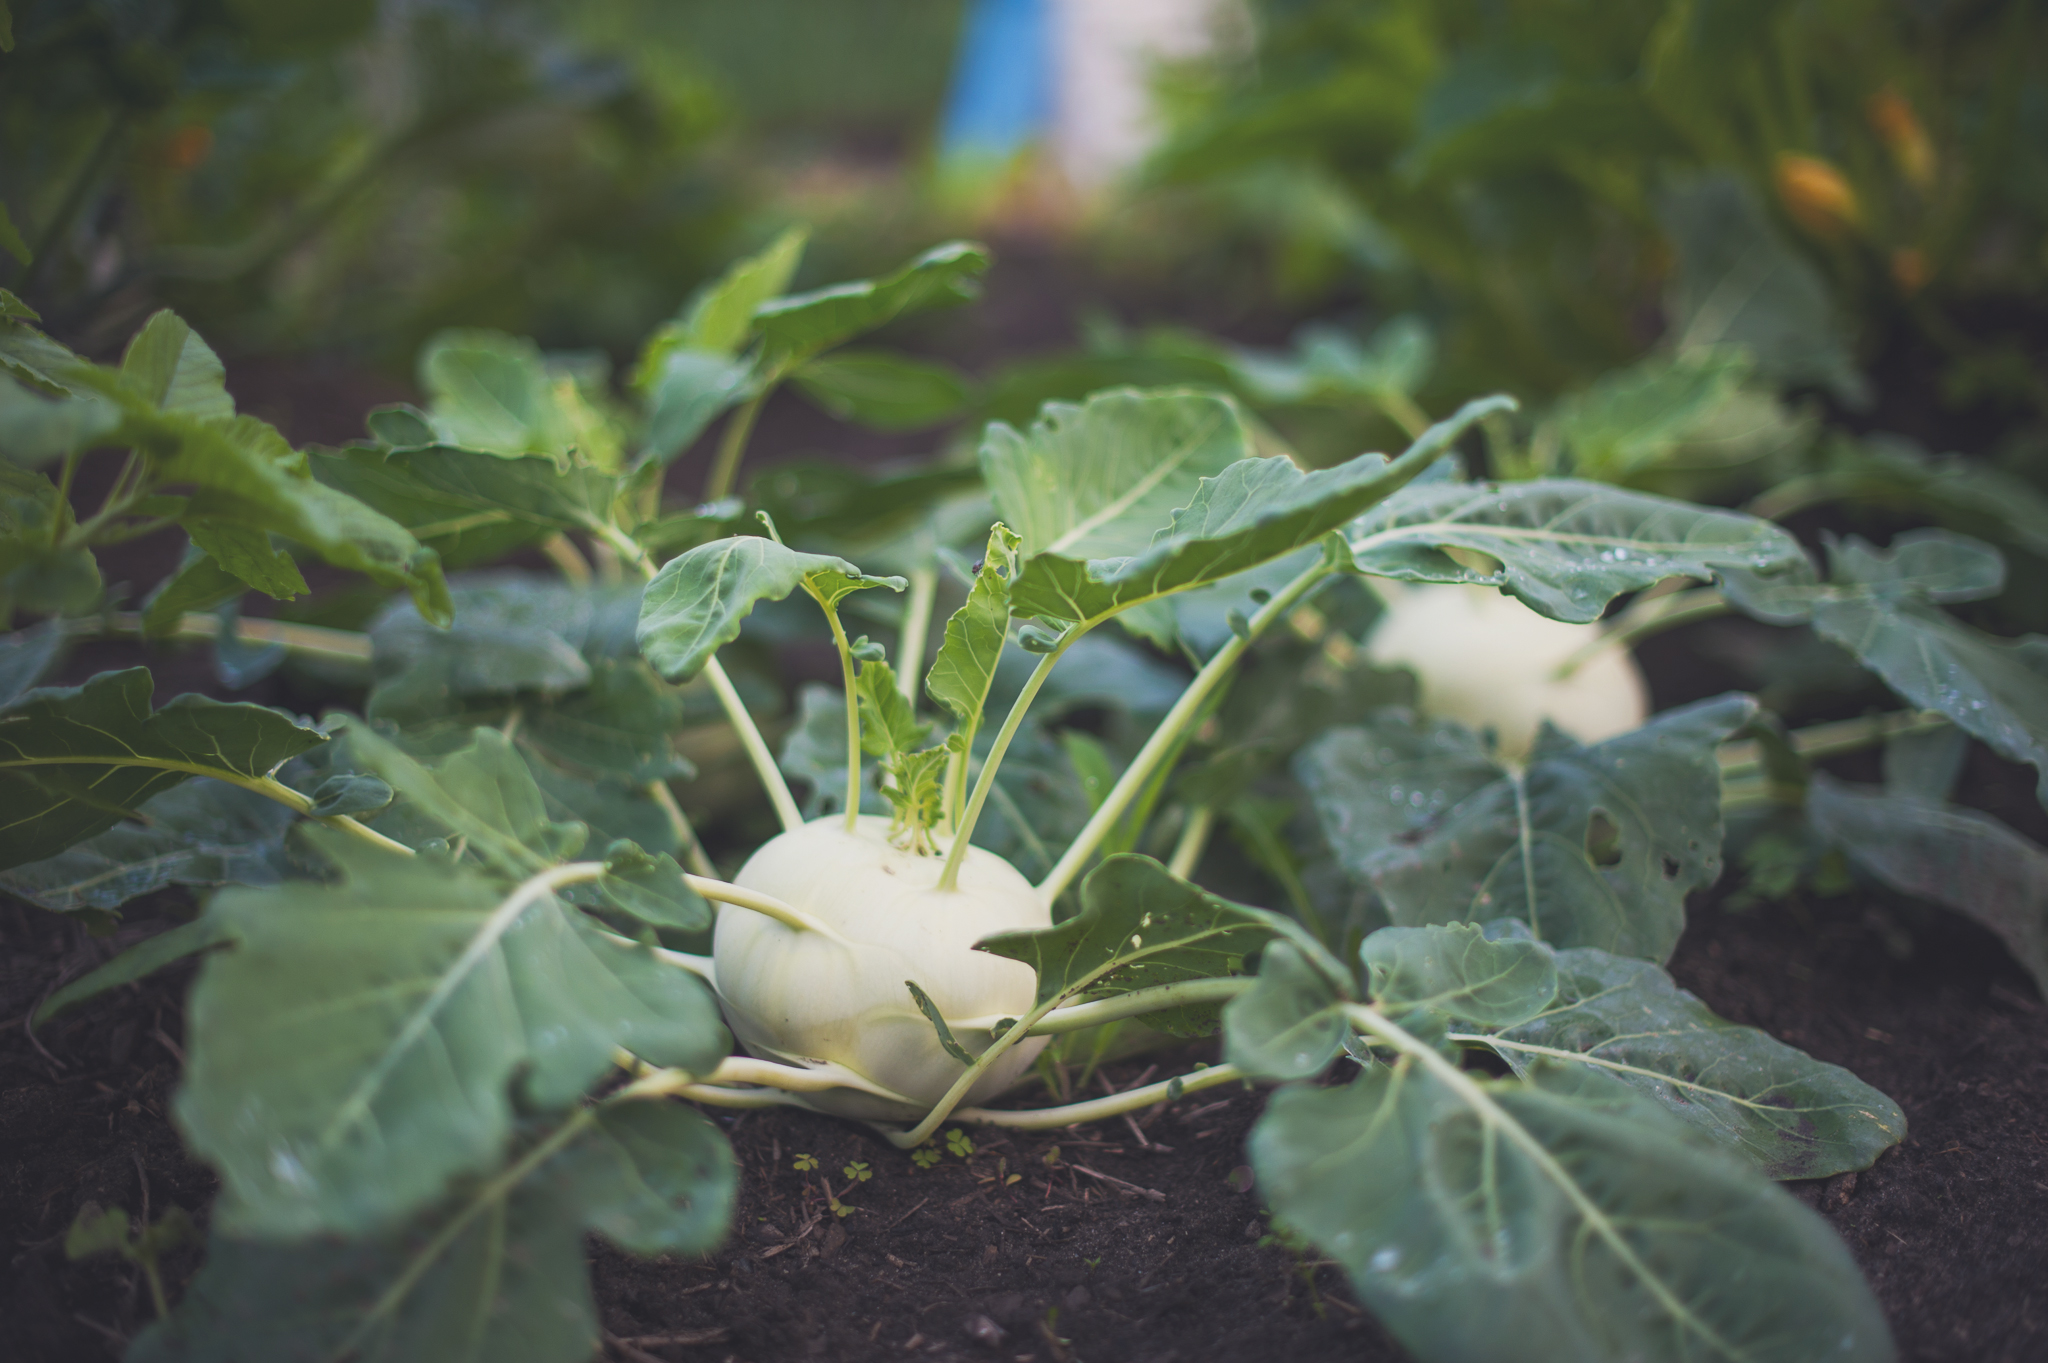 vegetable-kohlrabi-montreal-botanical-garden-photographer-field-science-alex-tran